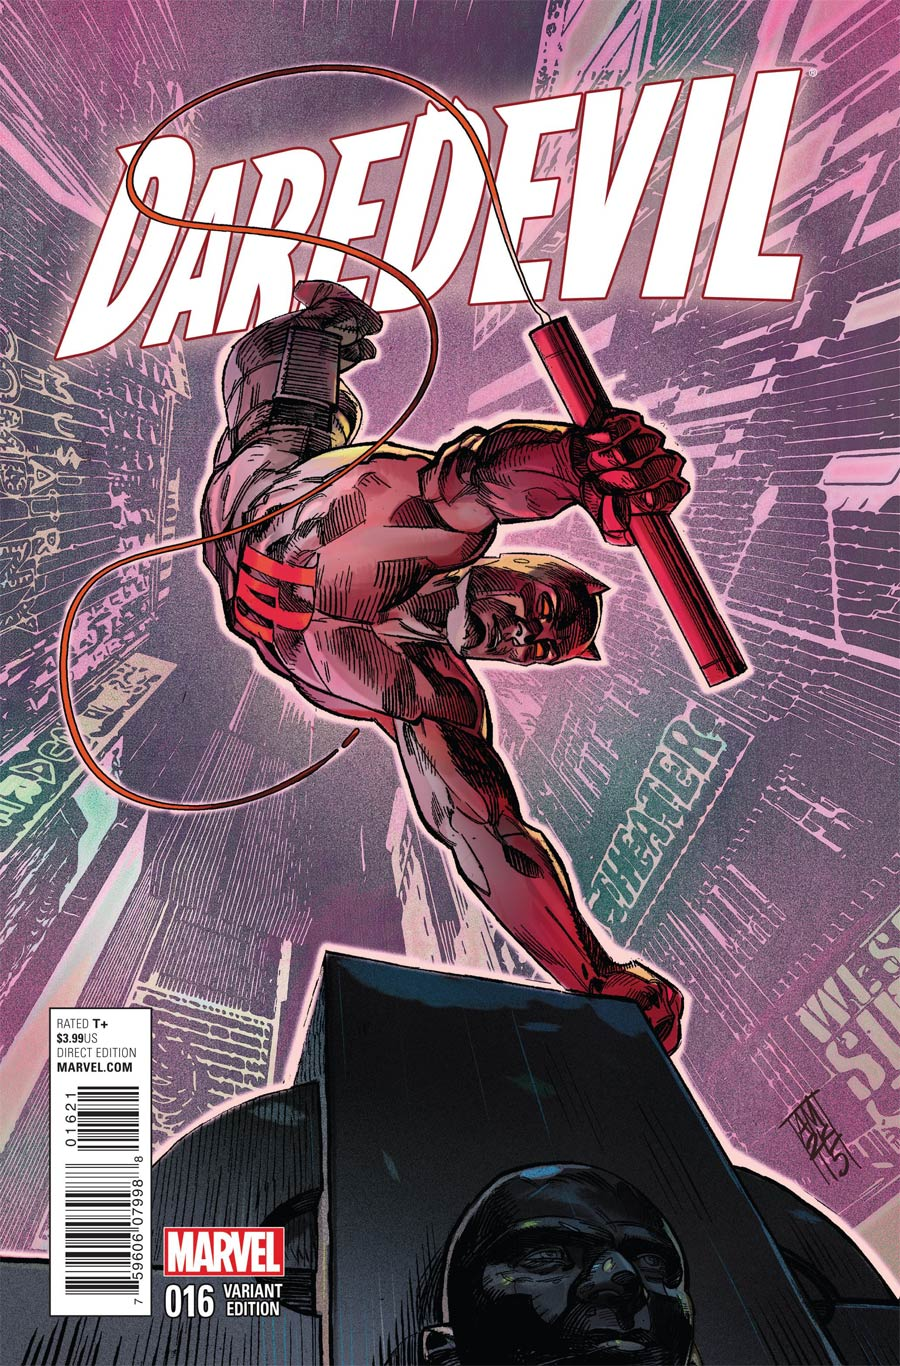 Daredevil Vol 4 #16 Cover B Variant NYC Cover